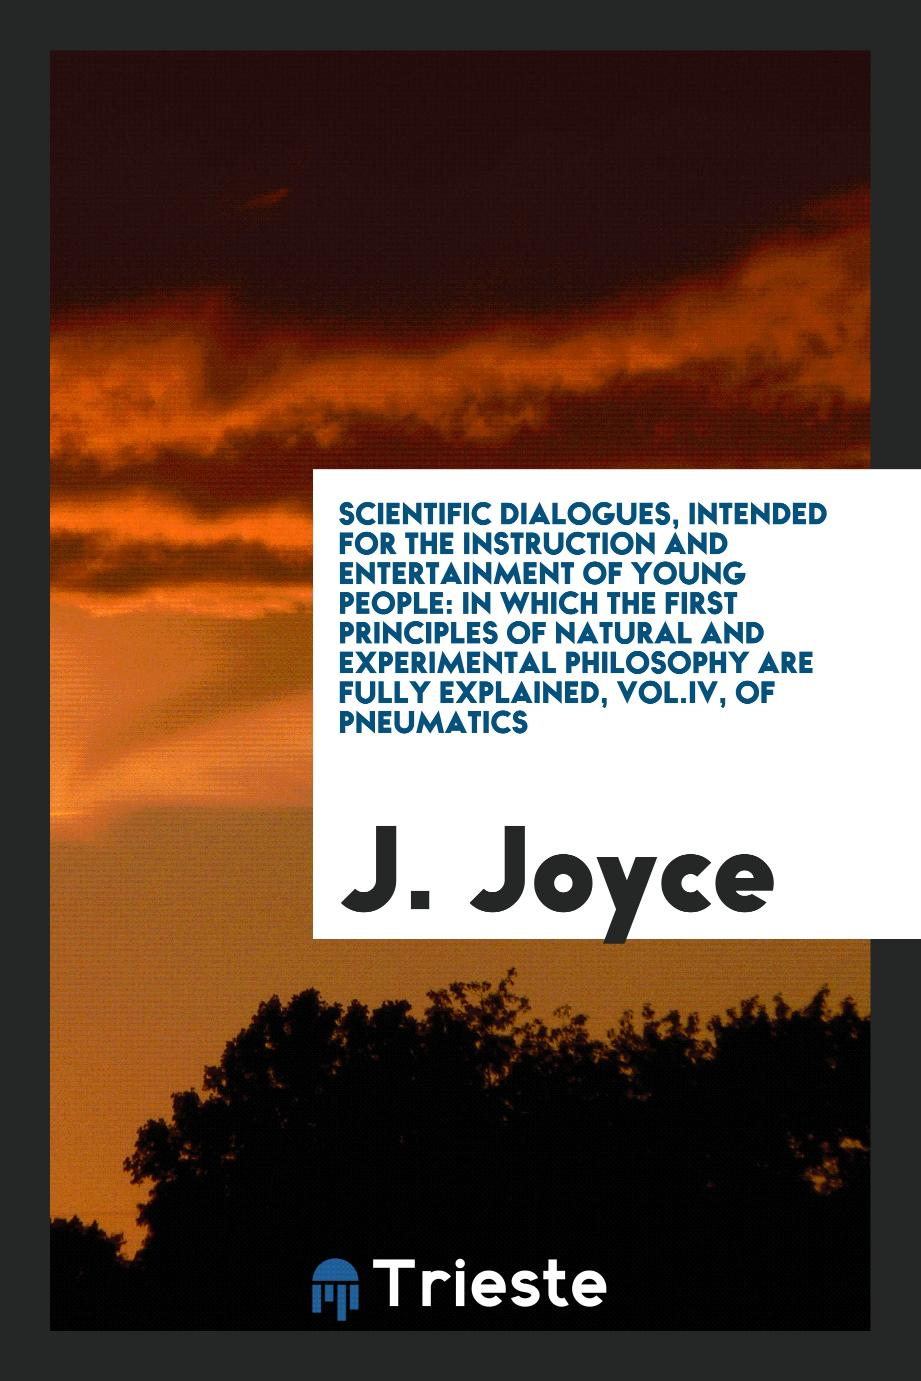 Scientific dialogues, intended for the instruction and entertainment of young people: in which the first principles of natural and experimental philosophy are fully explained, Vol.IV, of pneumatics